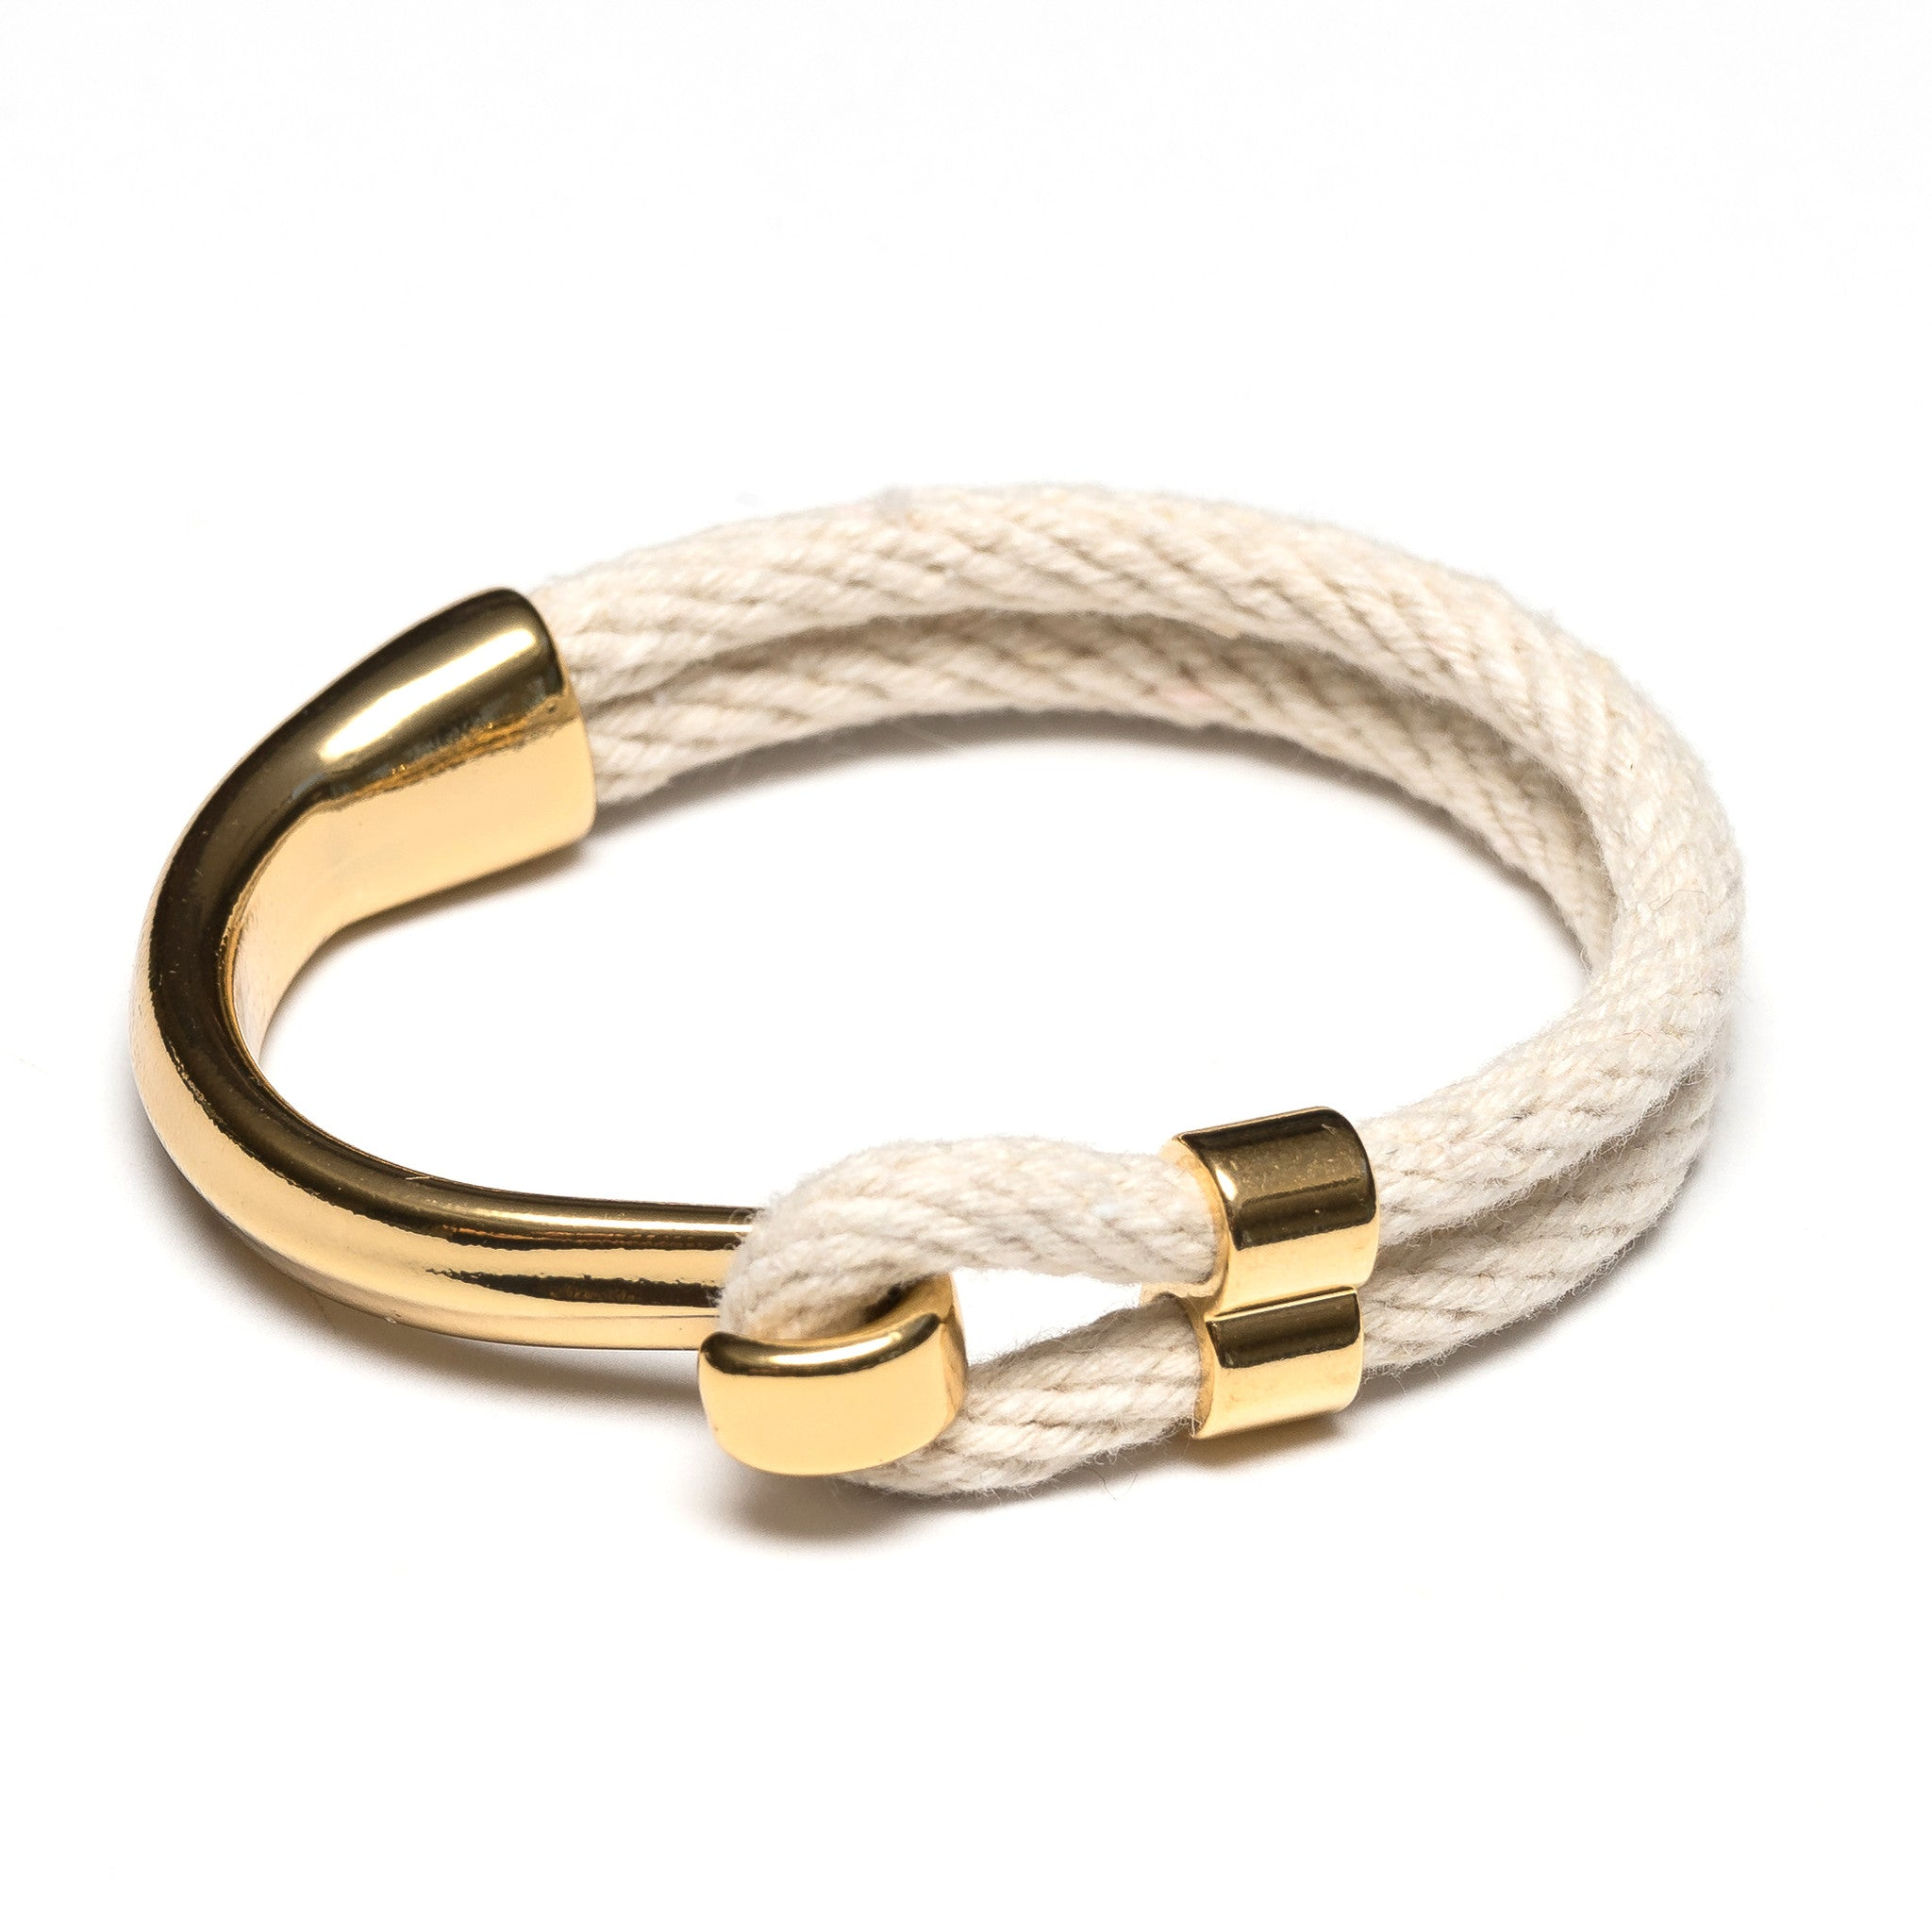 bangles clasp style and inspiredreams golden white dsc off bangle index product bracelet